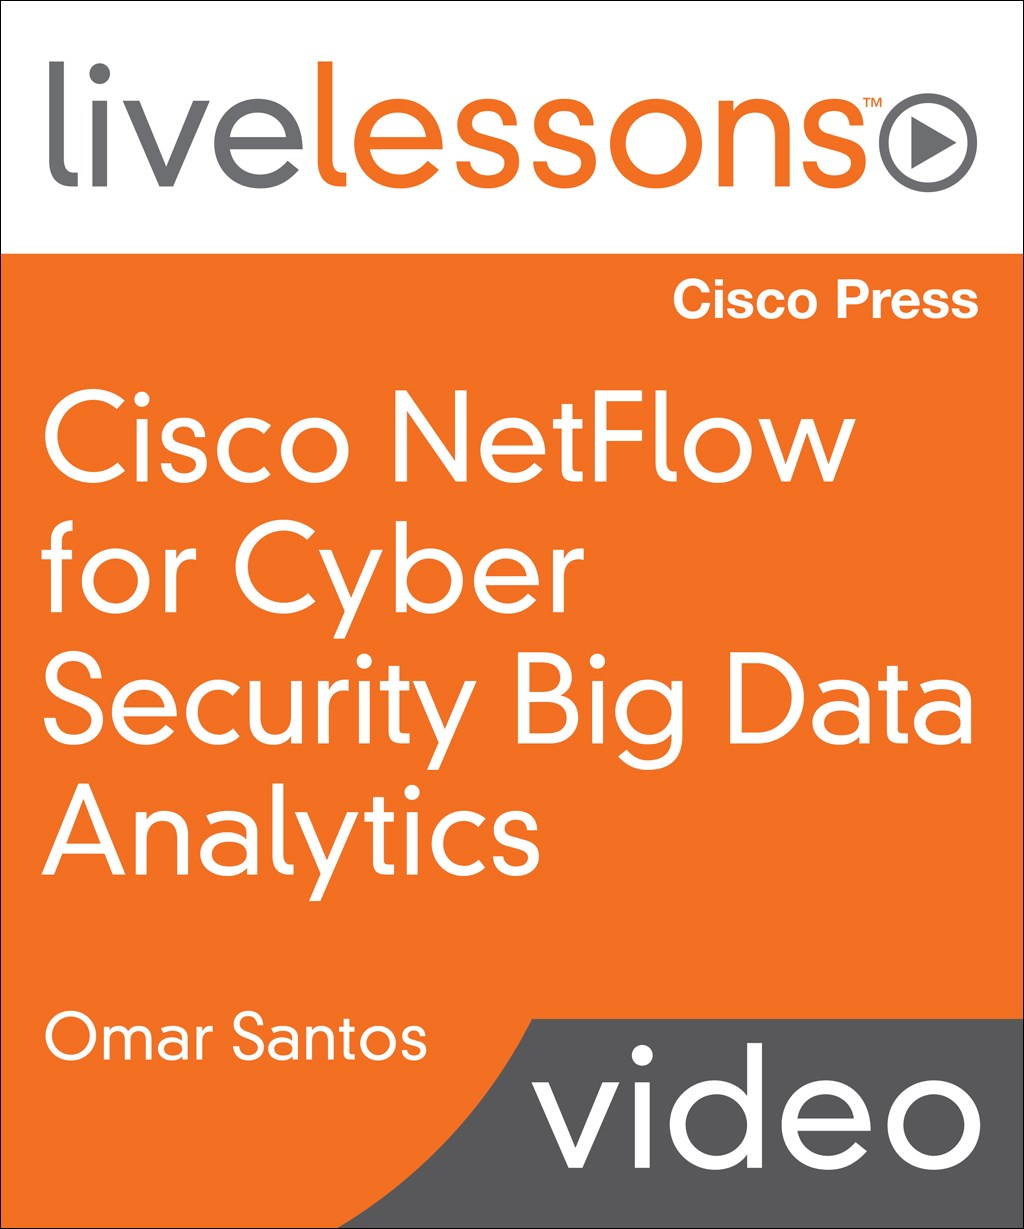 Cisco NetFlow LiveLessons: Big Data Analytics for Cyber Security